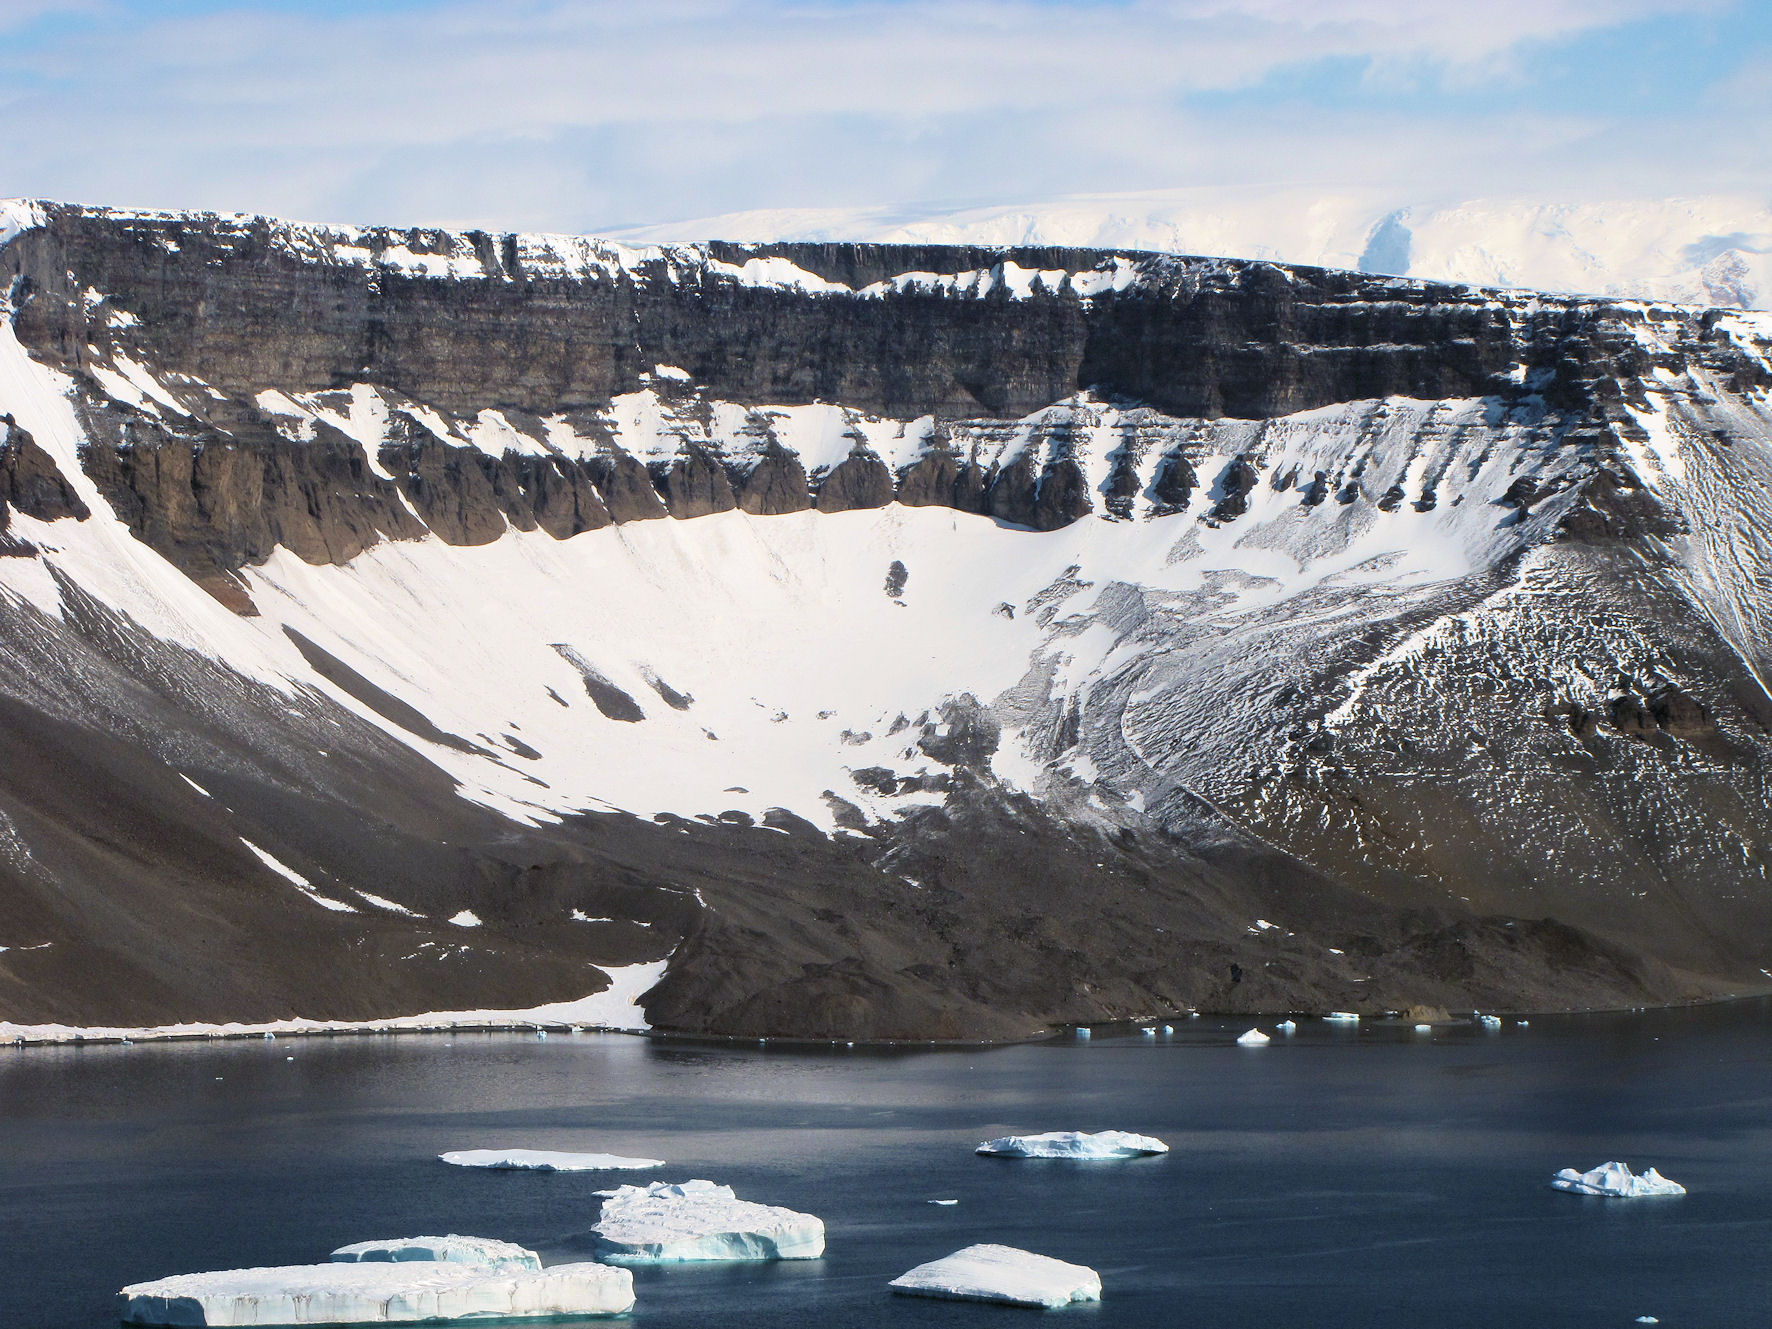 Common Misconceptions About Glaciers